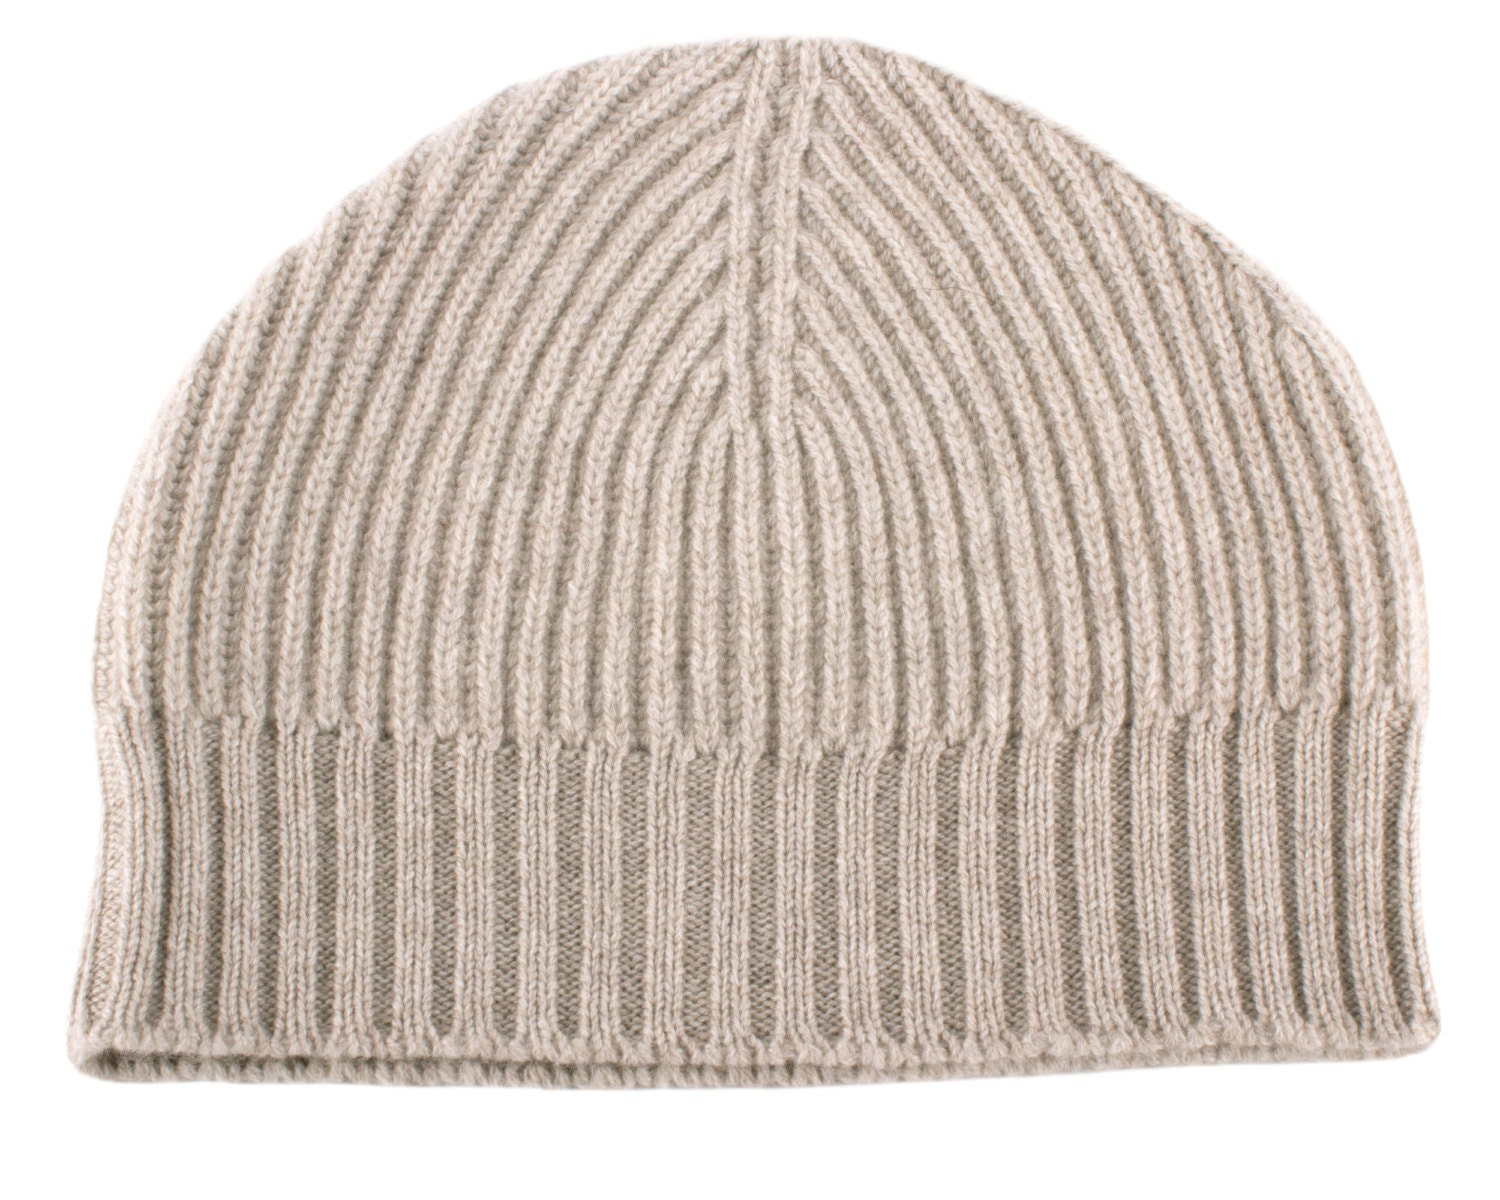 b10b592c44d Mens Ribbed 100% Cashmere Beanie Hat Light Natural